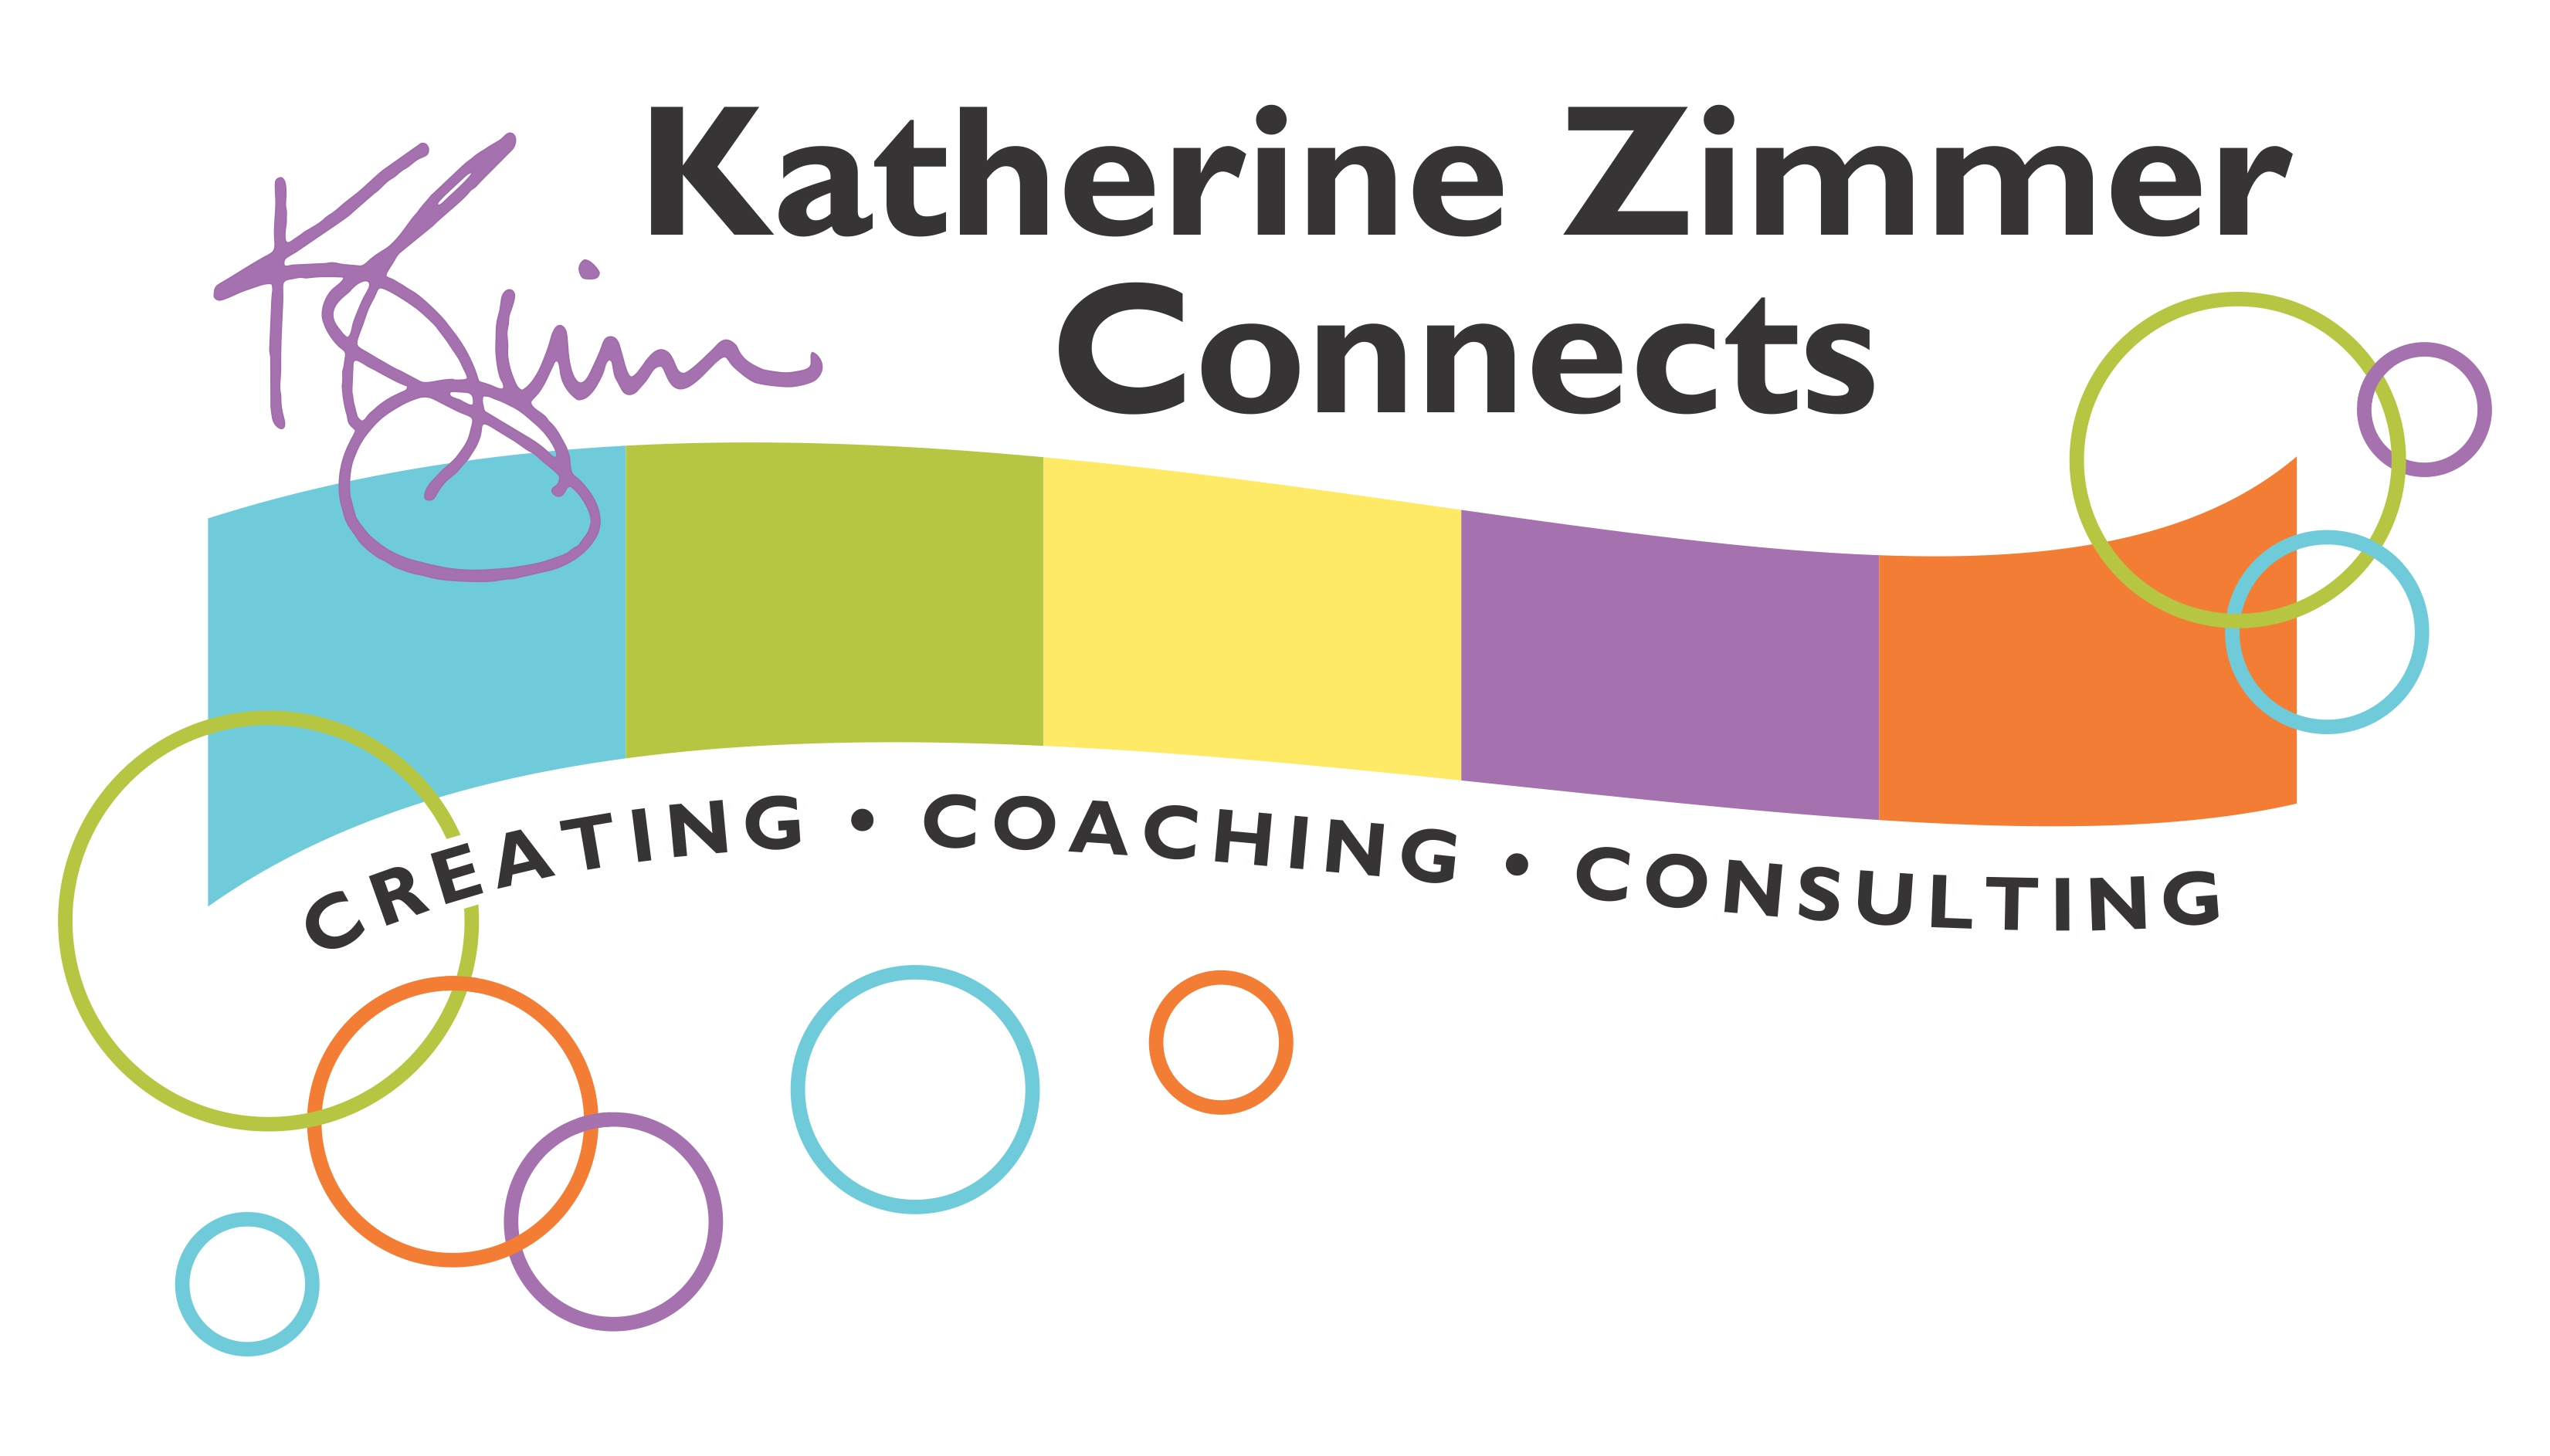 Katherine Zimmer Connects